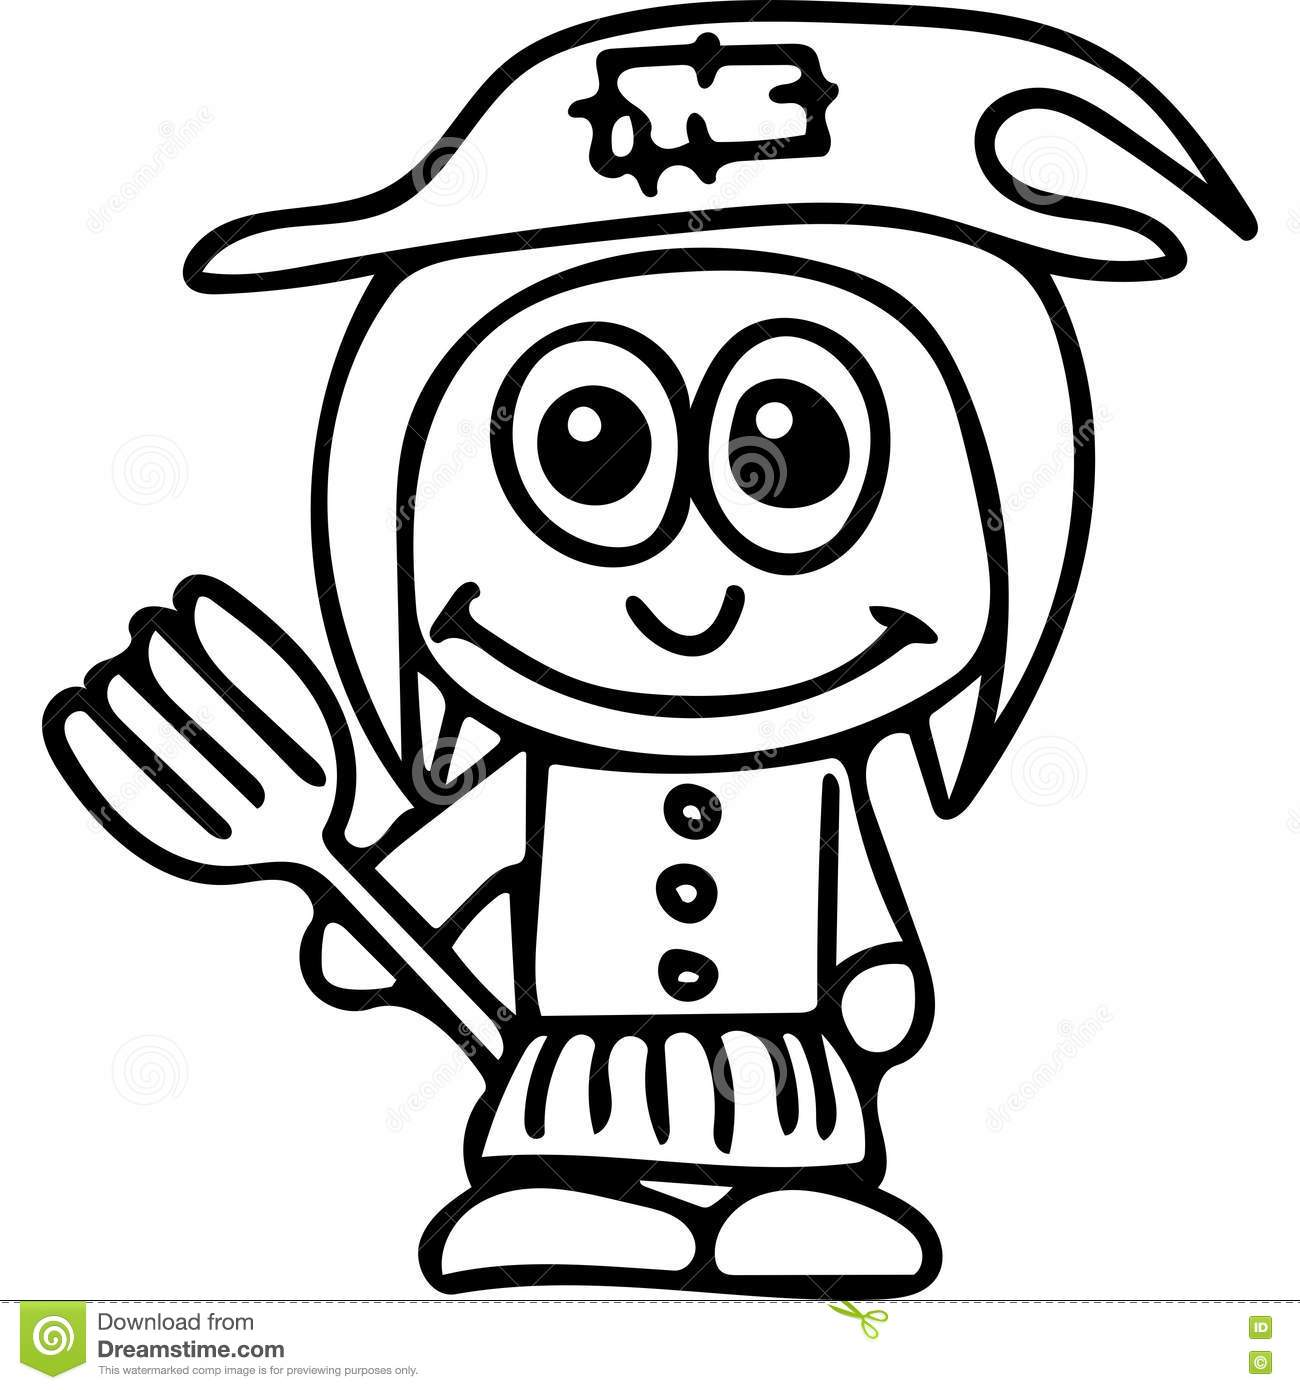 Witch kids coloring page stock illustration. Illustration of ...